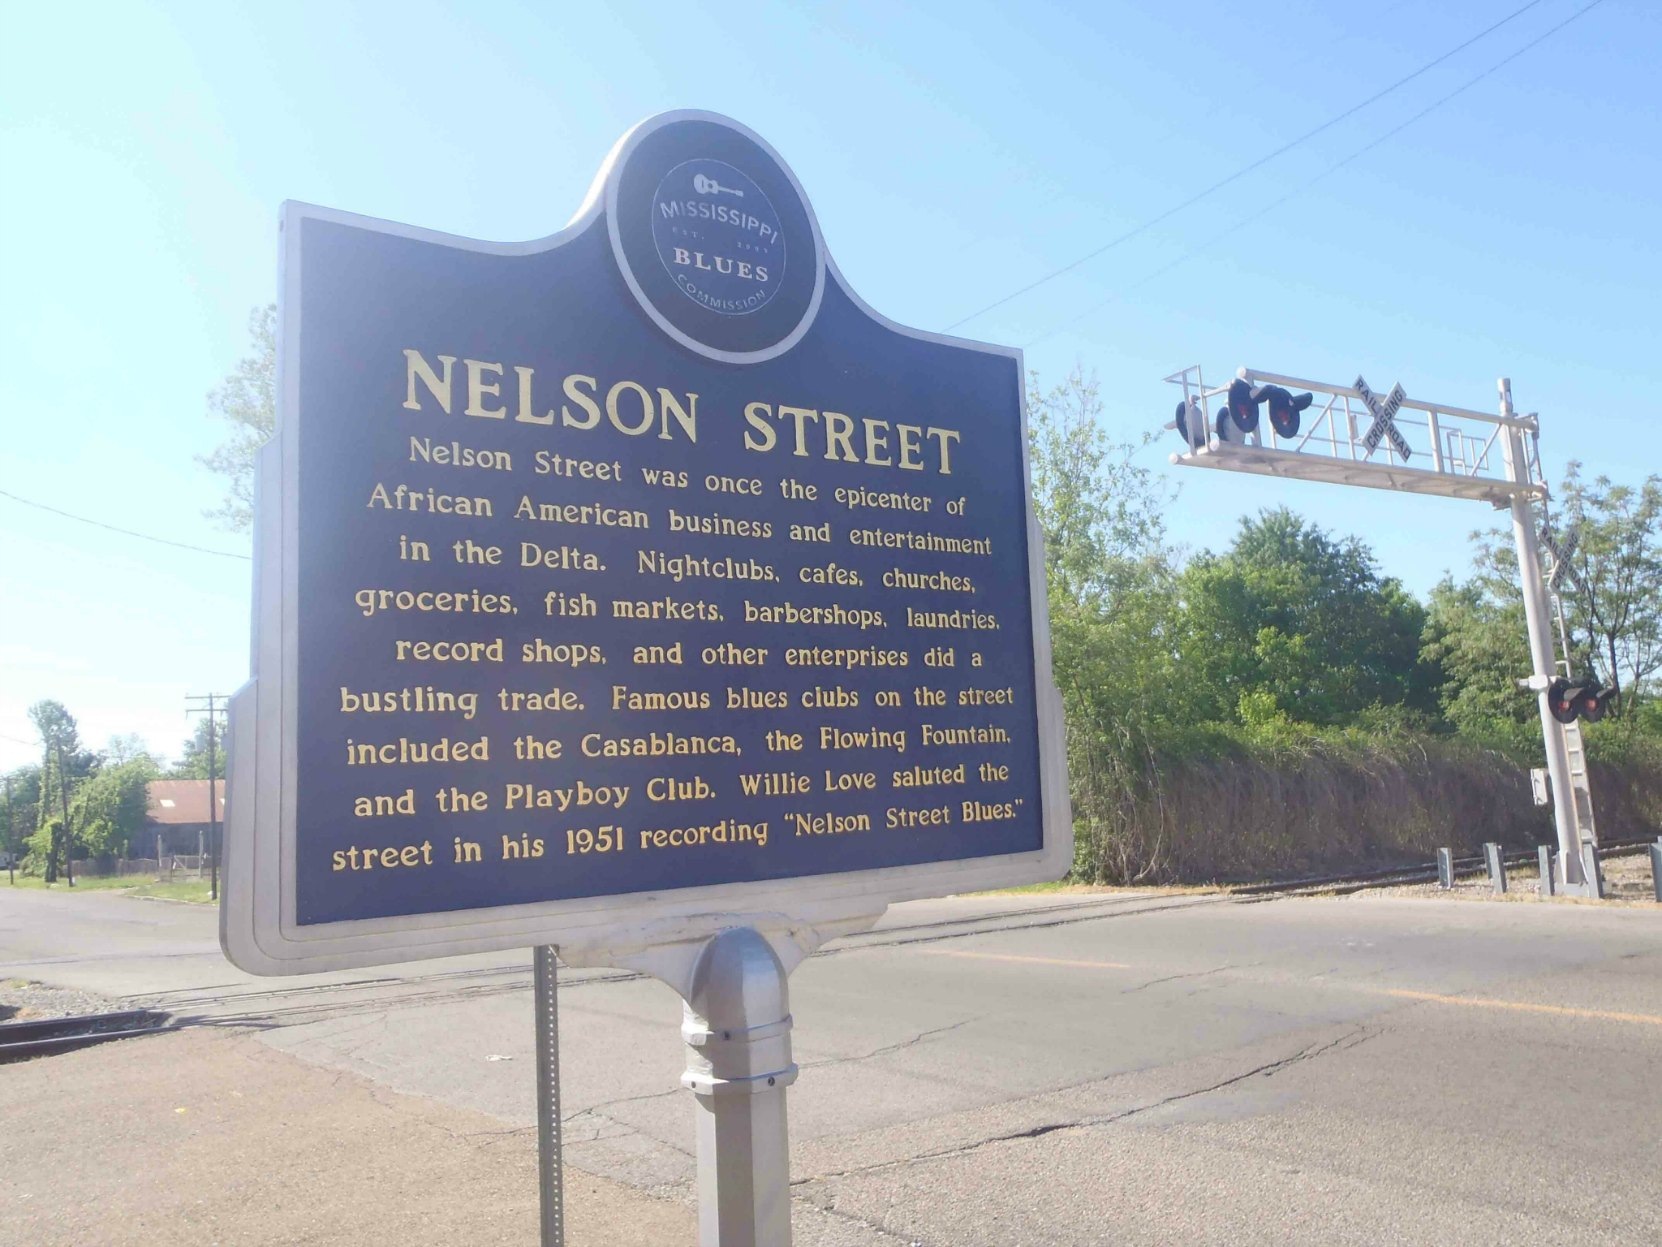 Mississippi Blues Trail marker for Nelson Street, Greenville, Mississippi